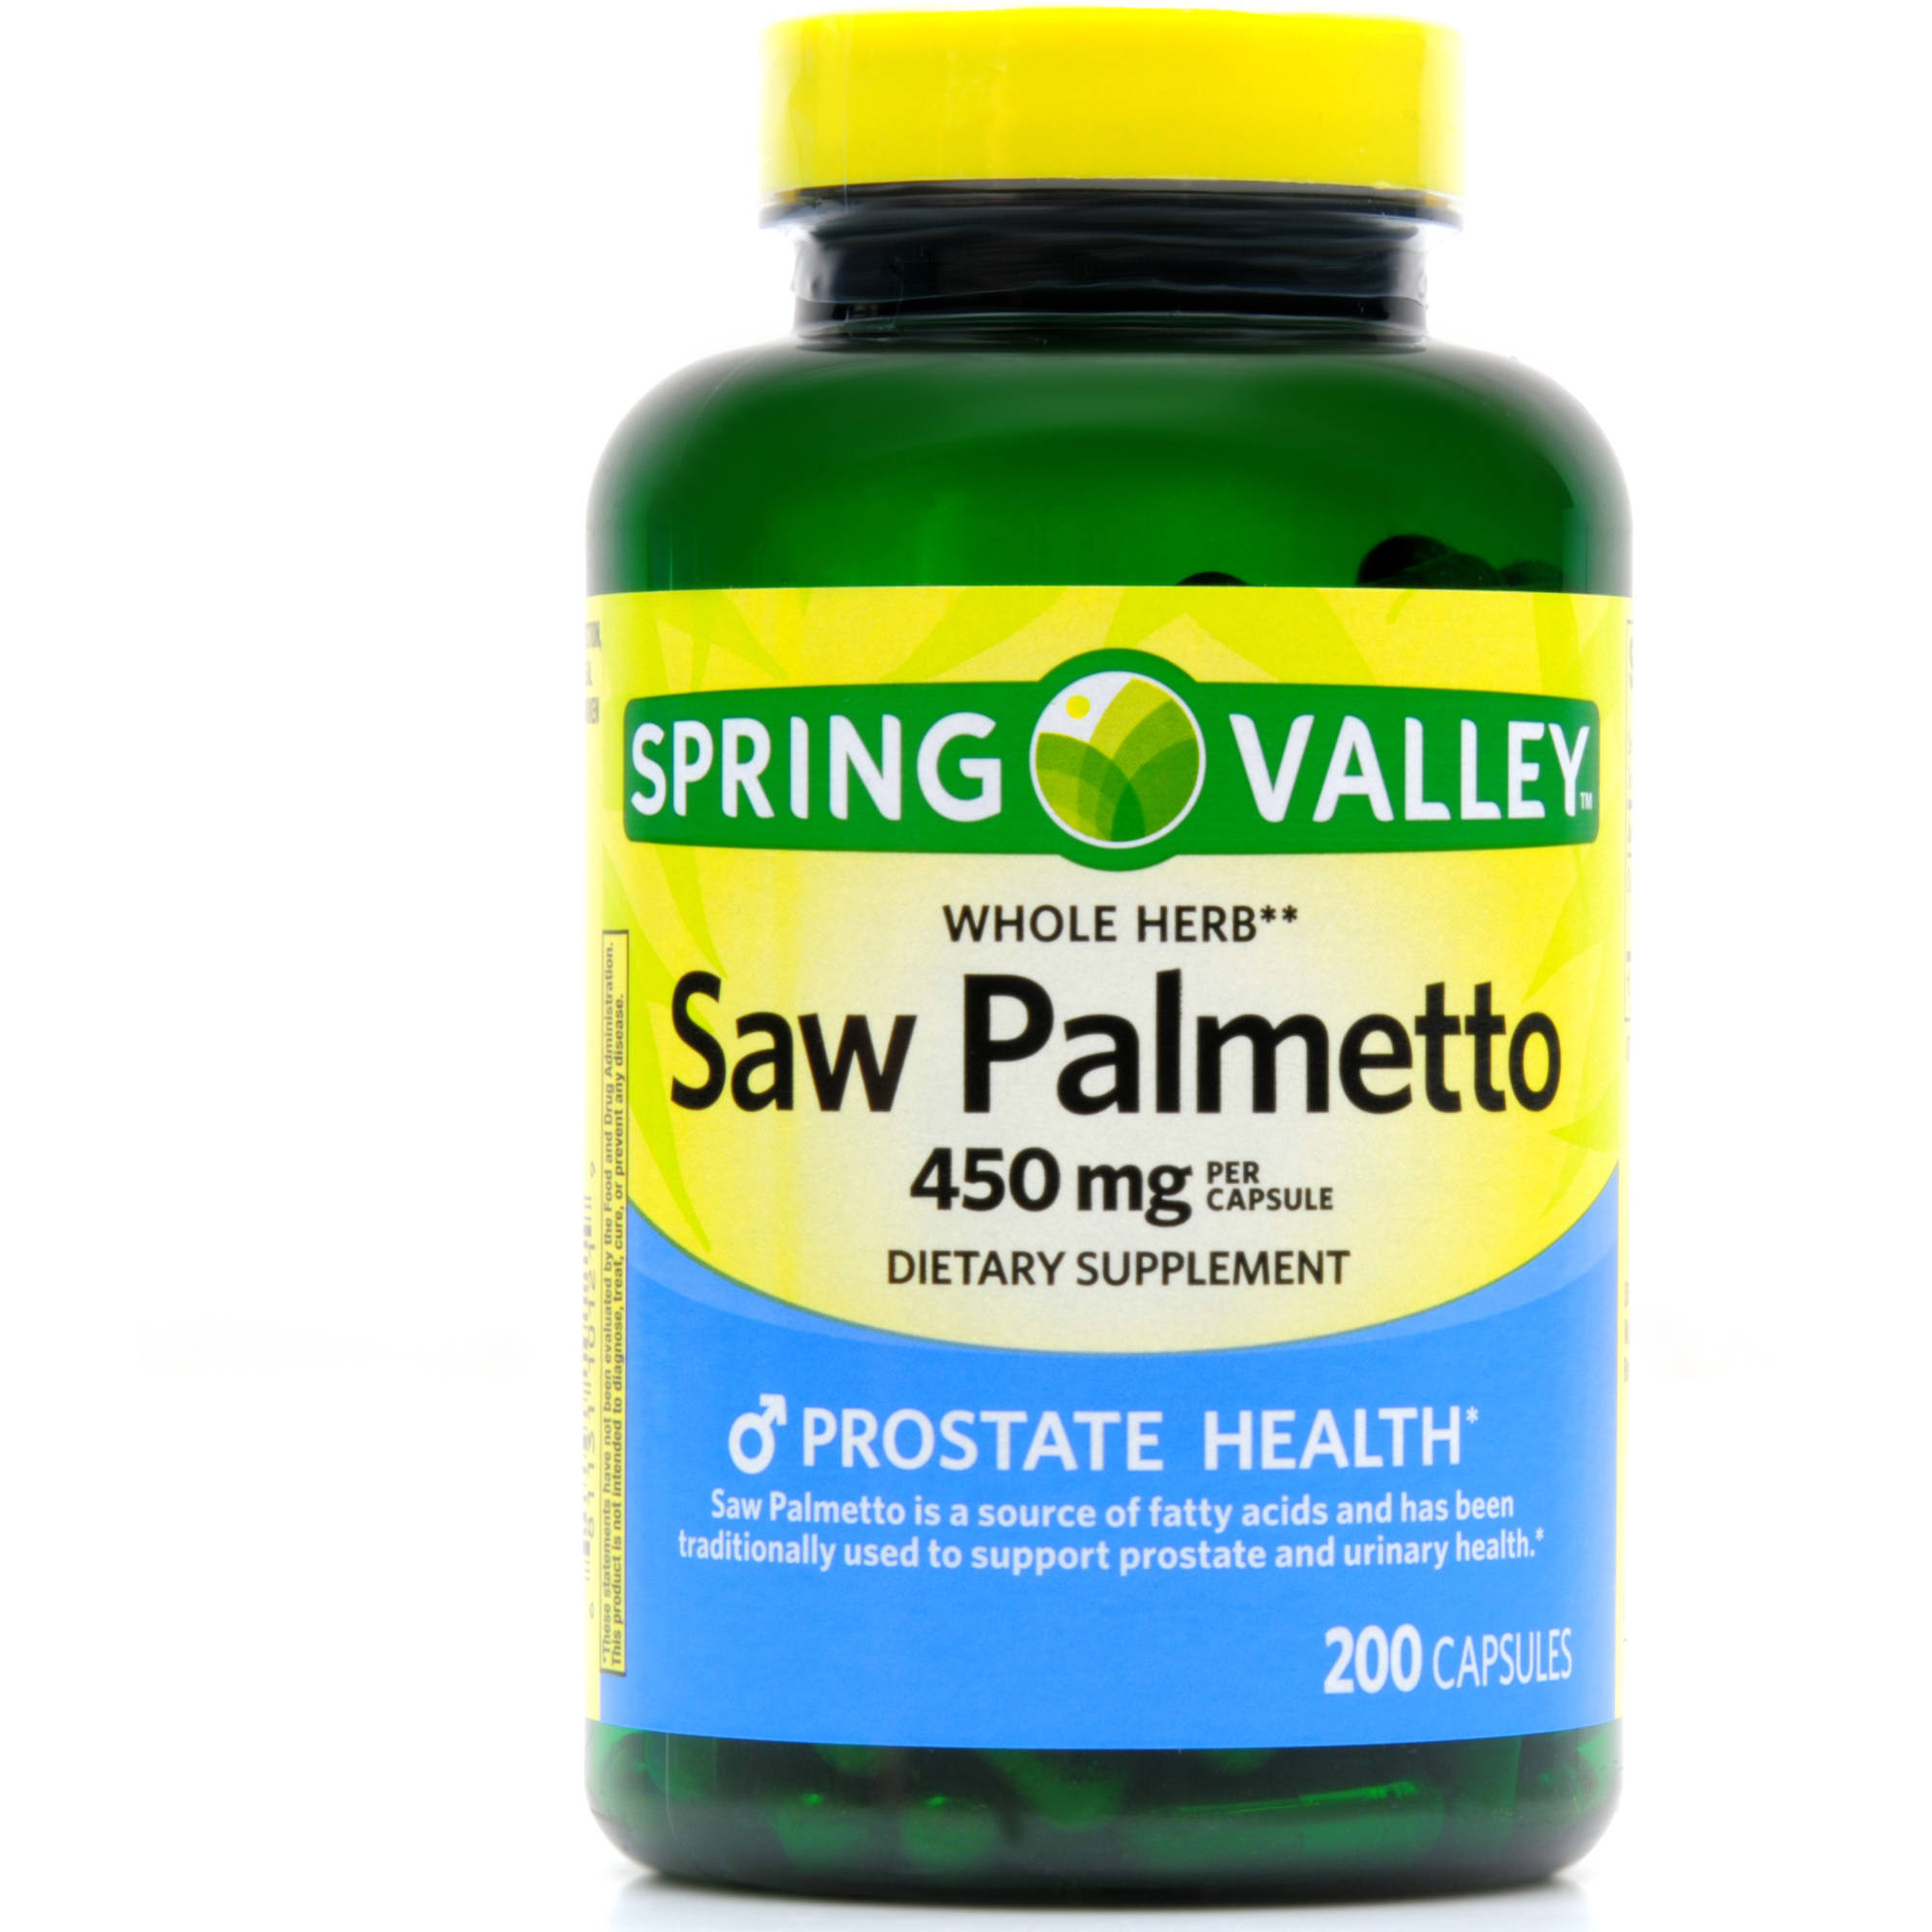 Spring Valley Saw Palmetto Dietary Supplement Capsules, 450mg, 200 count